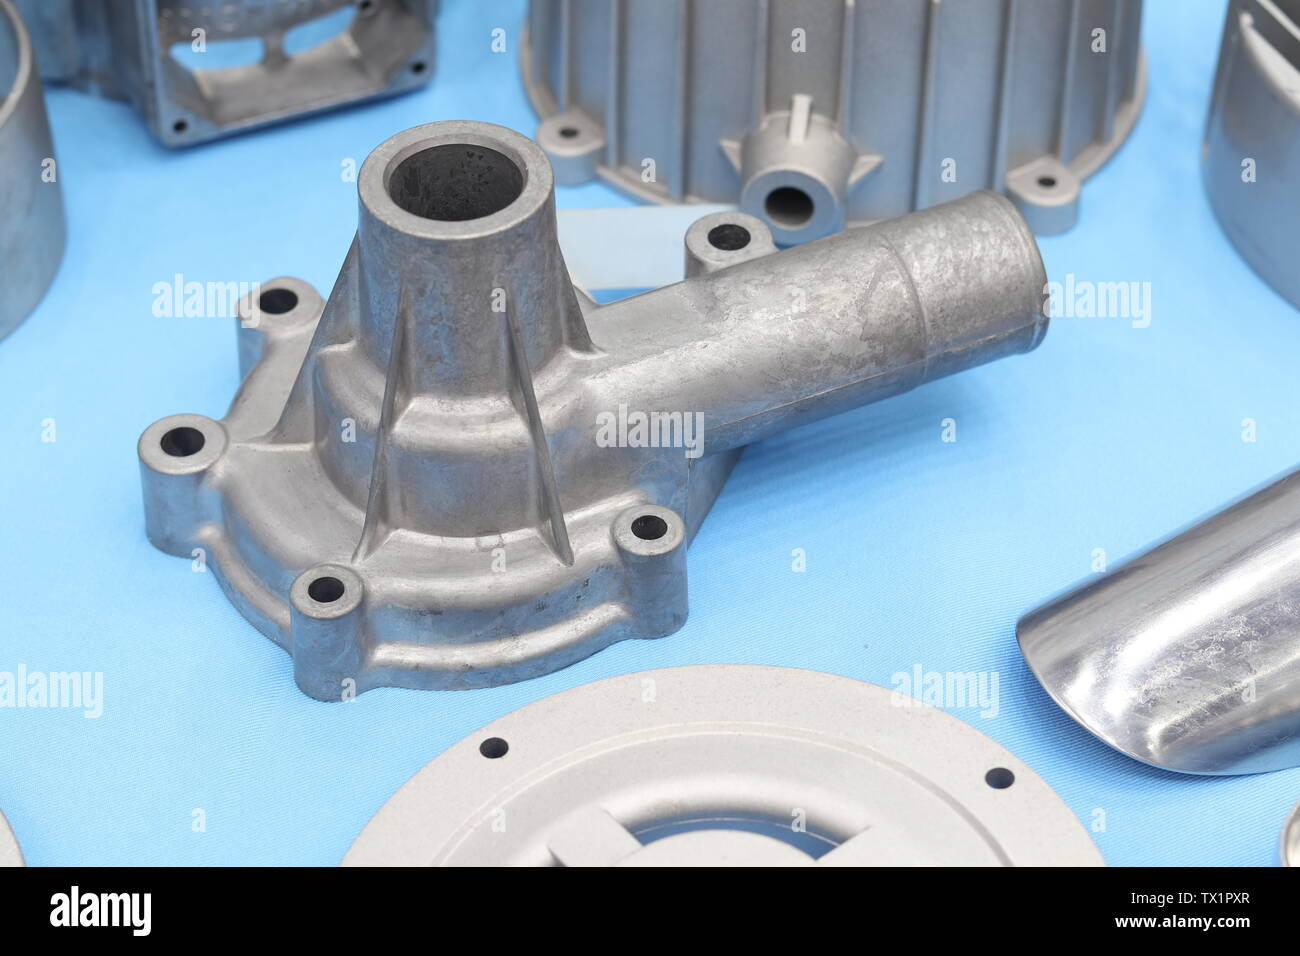 Die Casting Mold Stock Photos & Die Casting Mold Stock